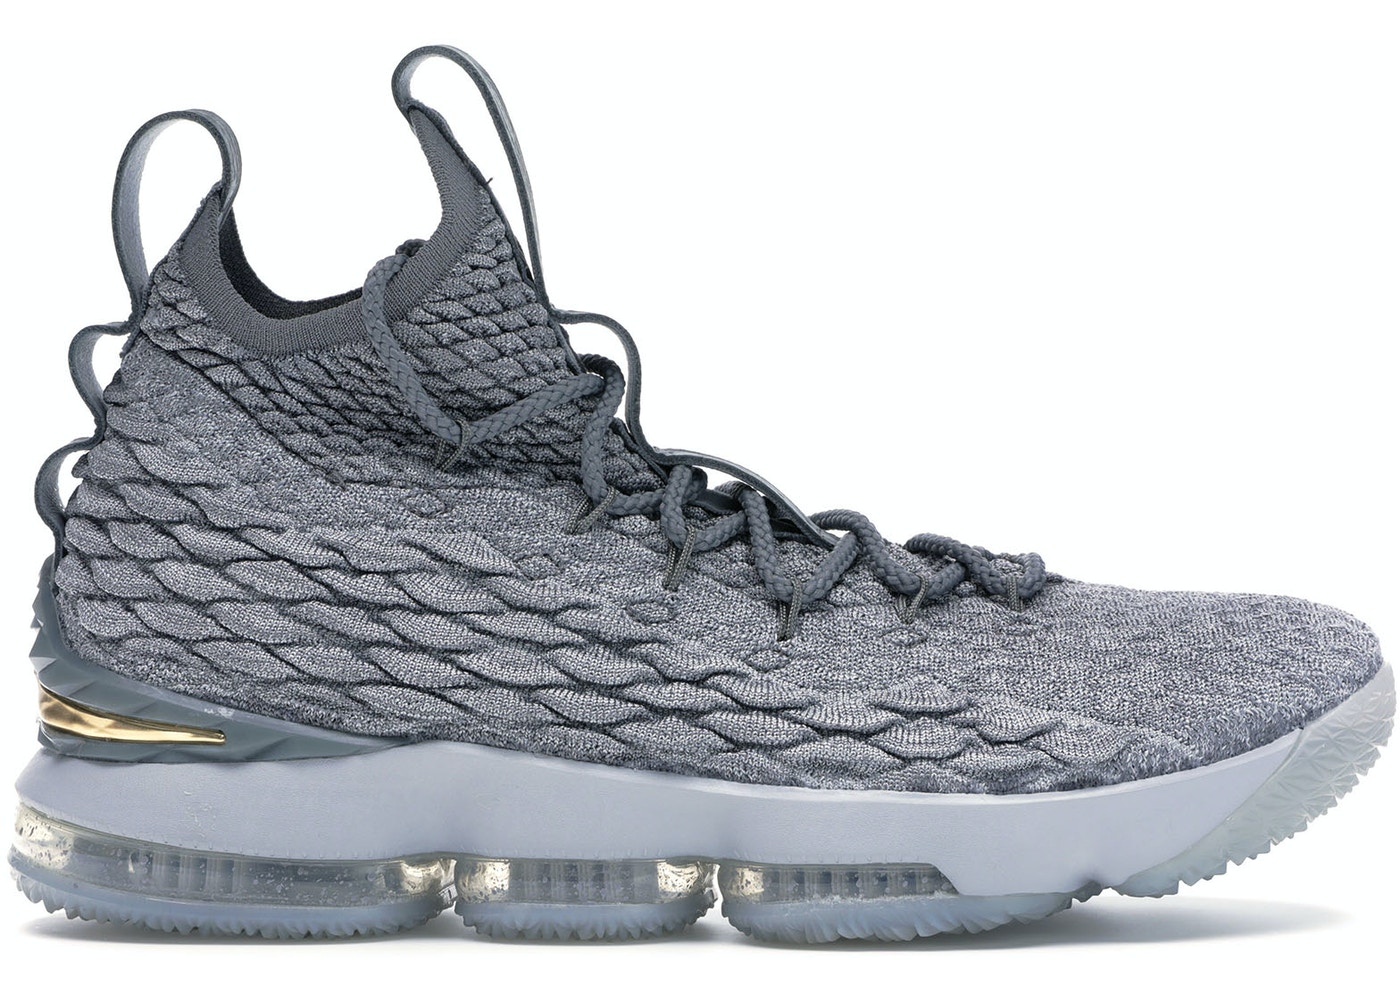 LeBron 15 Nike LeBron 15 City Series - 897648-005